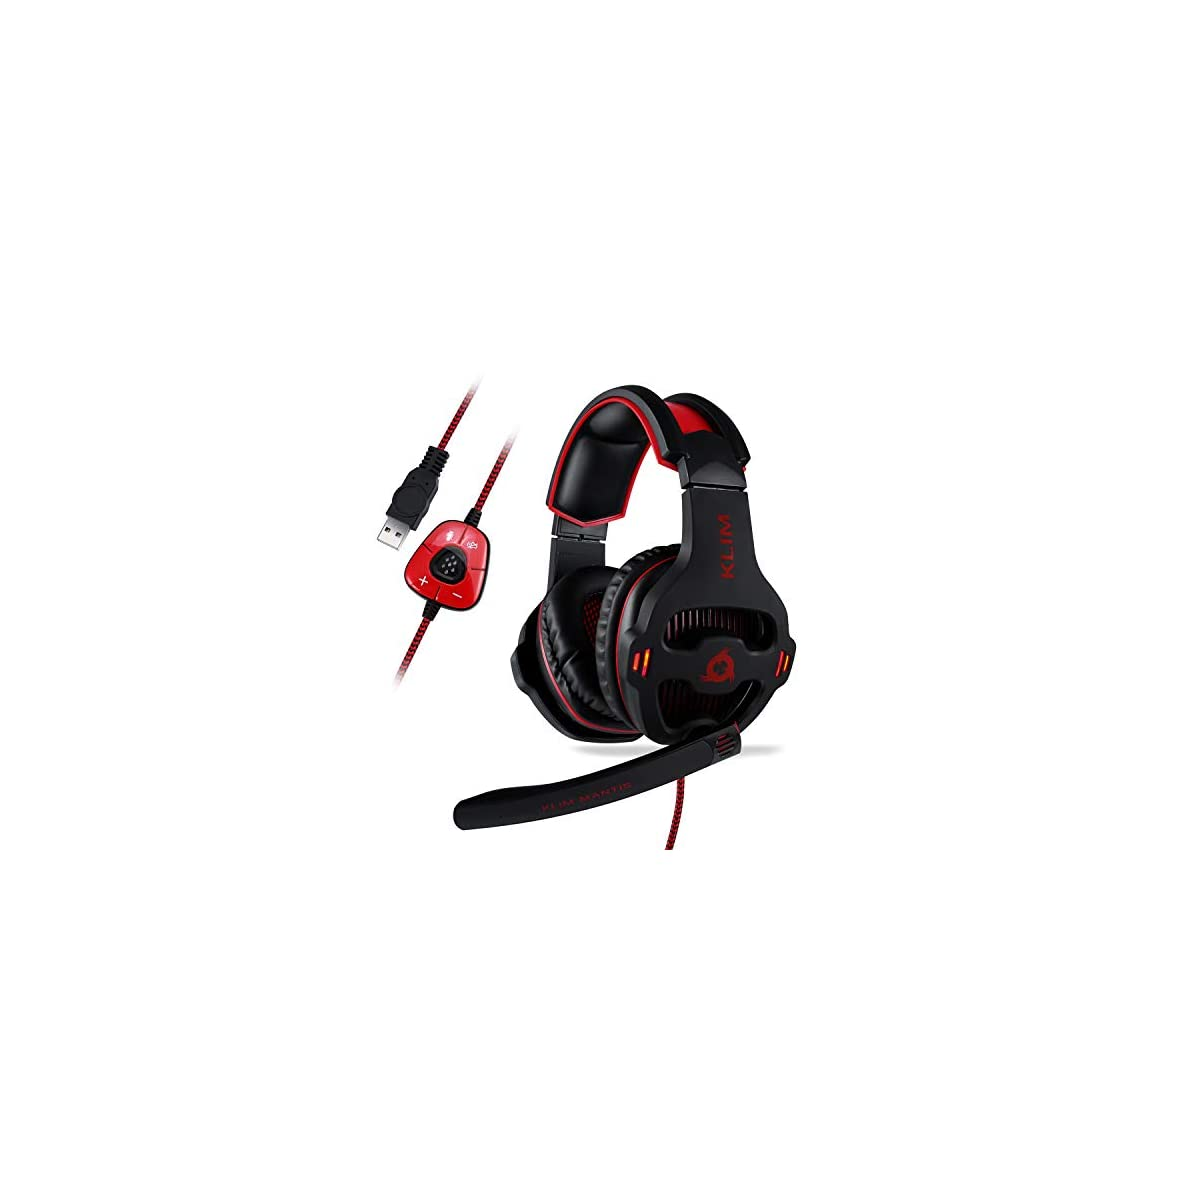 ⭐️ KLIM Mantis – Gaming Headset with Mic – for PC, PS4, Nintendo Switch, Mac, Mobile – USB 7.1 – over Ear High Quality Headphones [ New 2019 Version ] Noise Cancelling Headphone and Microphone 41 2BIjU58bWL